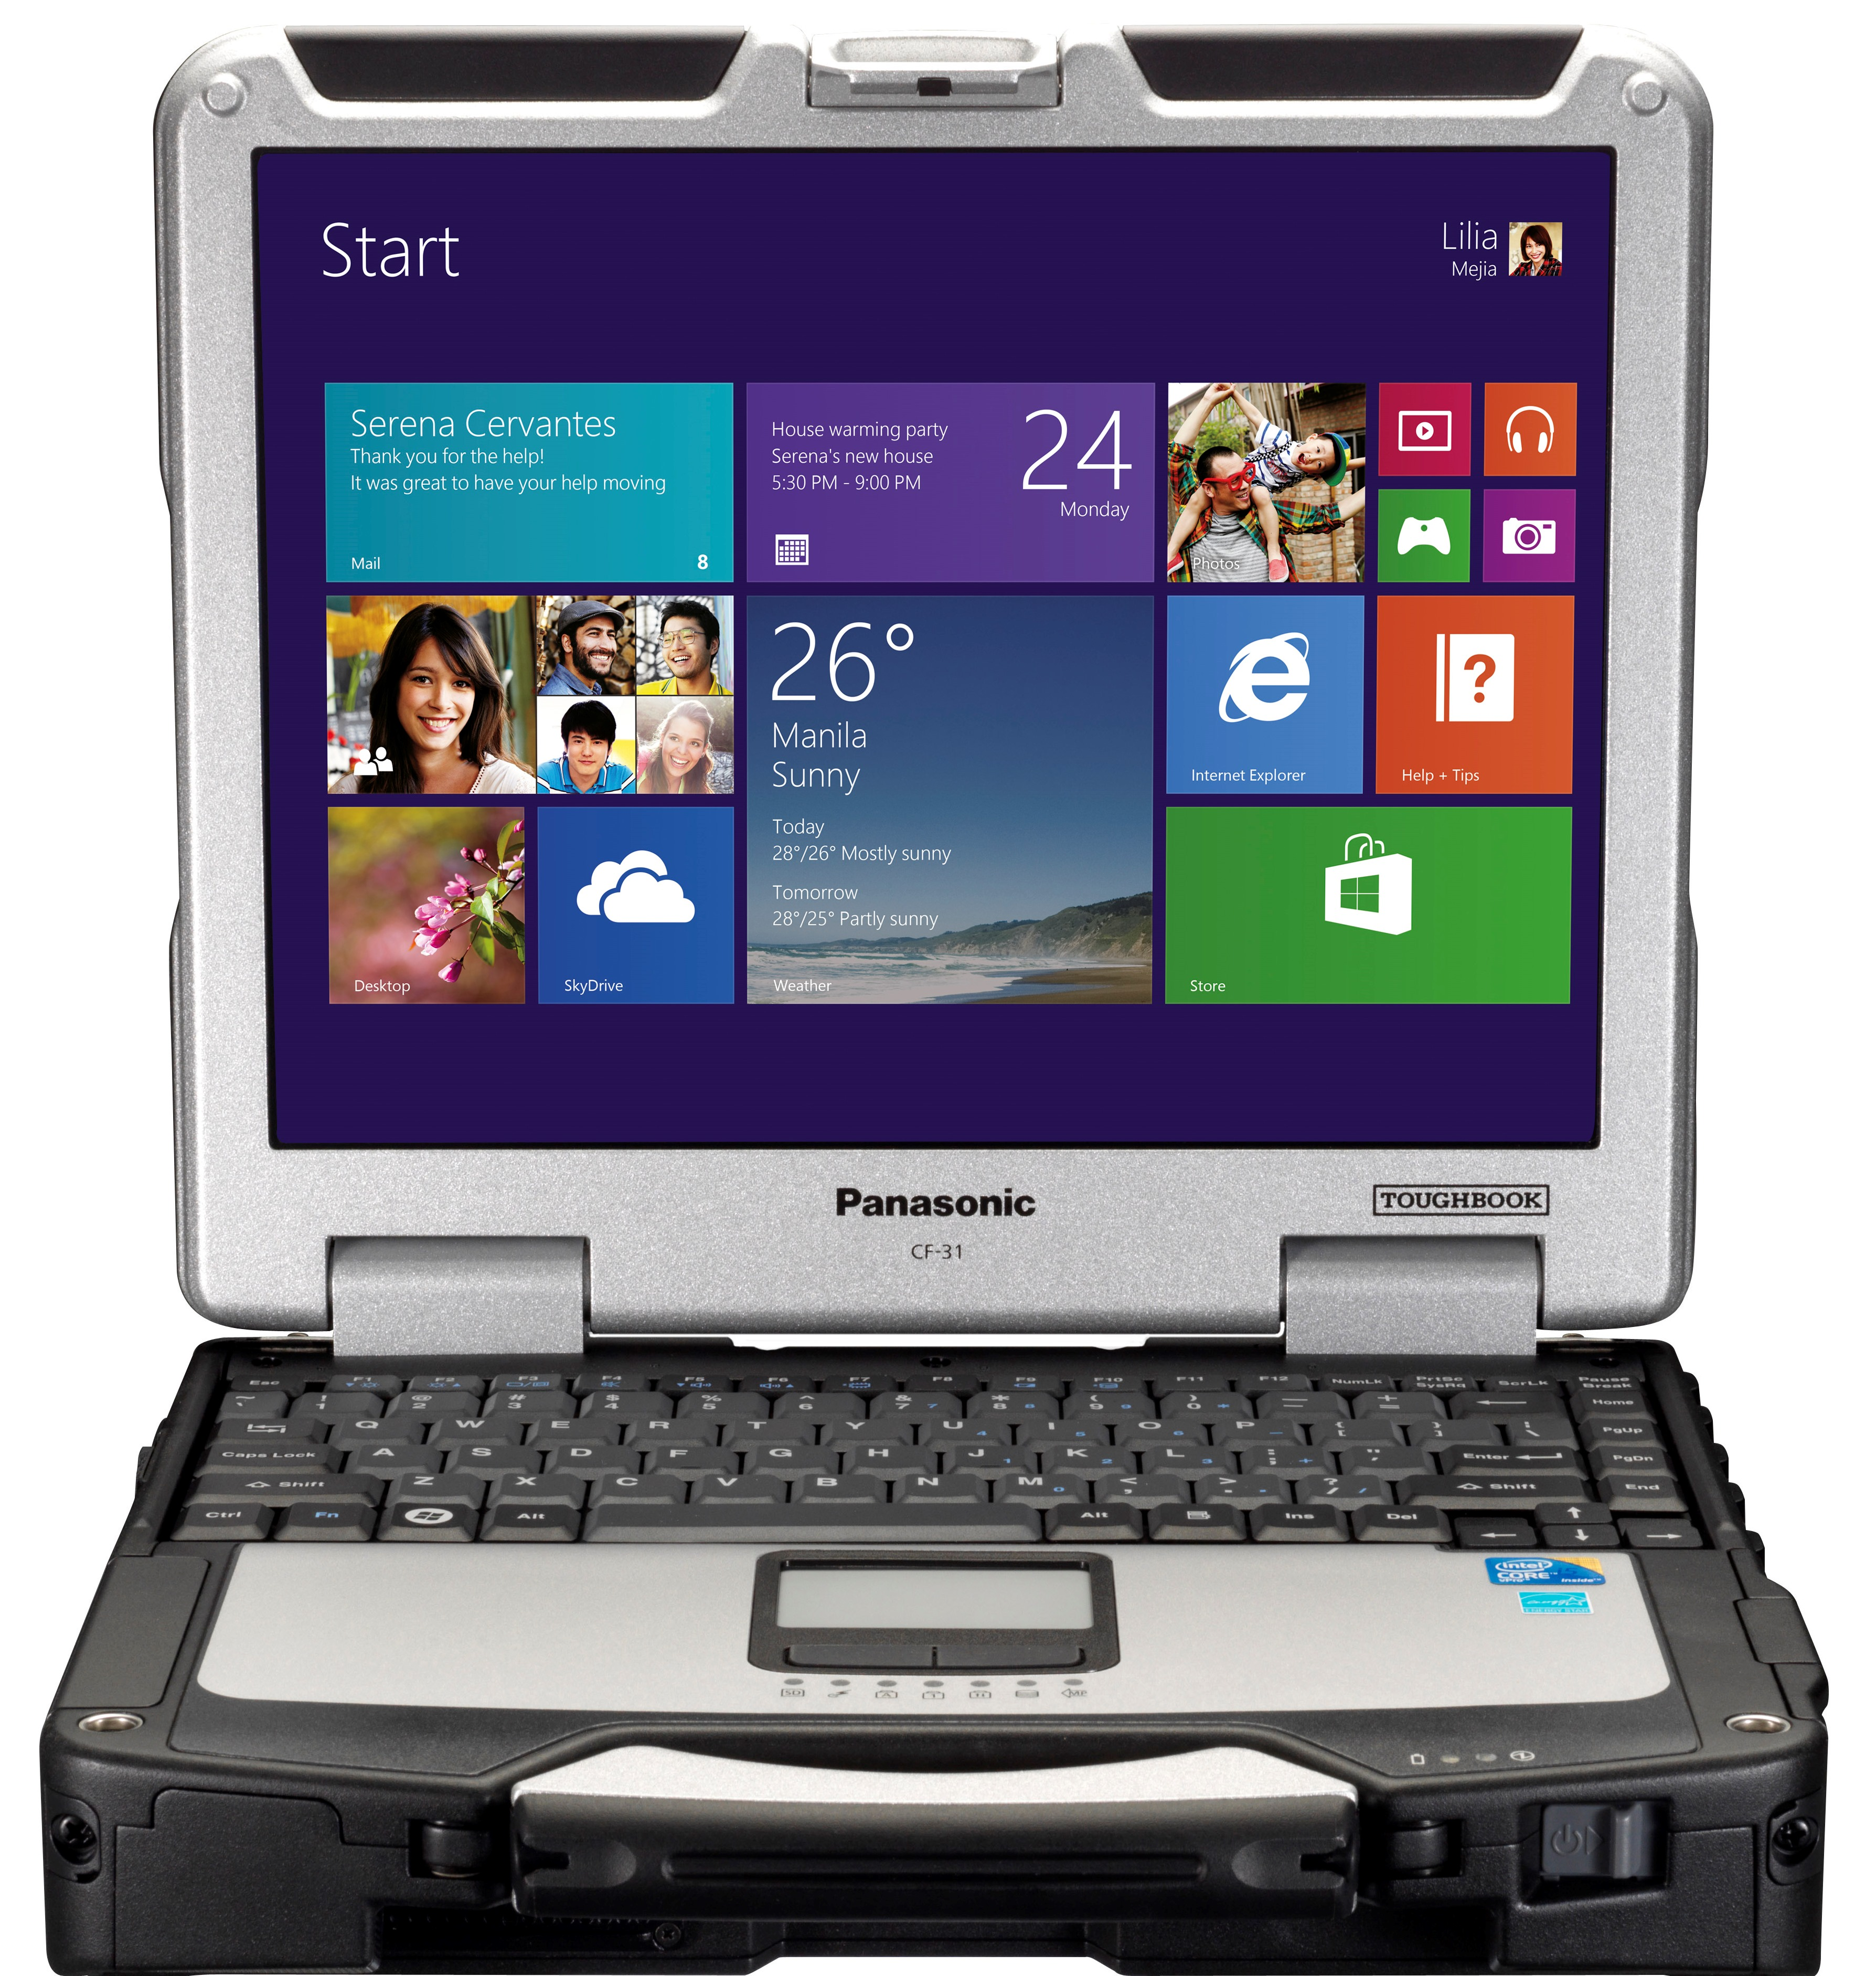 Panasonc Toughbook CF-31 MK4 Windows 8